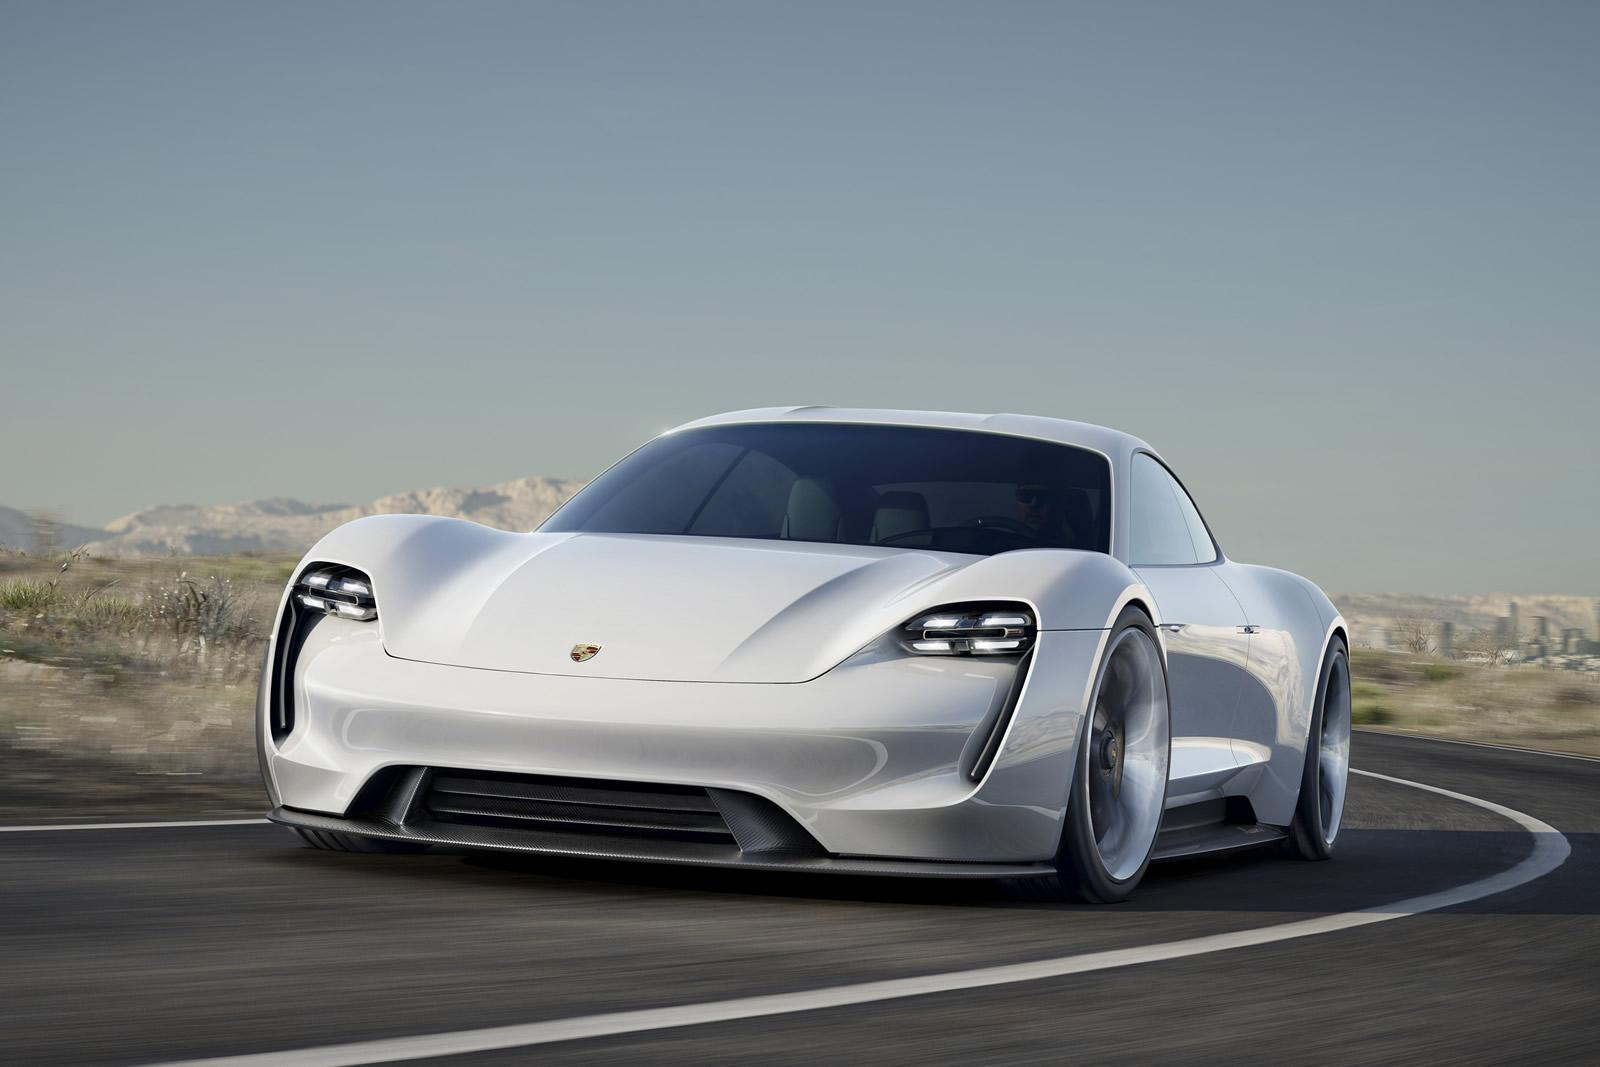 Porsche investing 6 billion euros in EV & hybrid tech by 2022